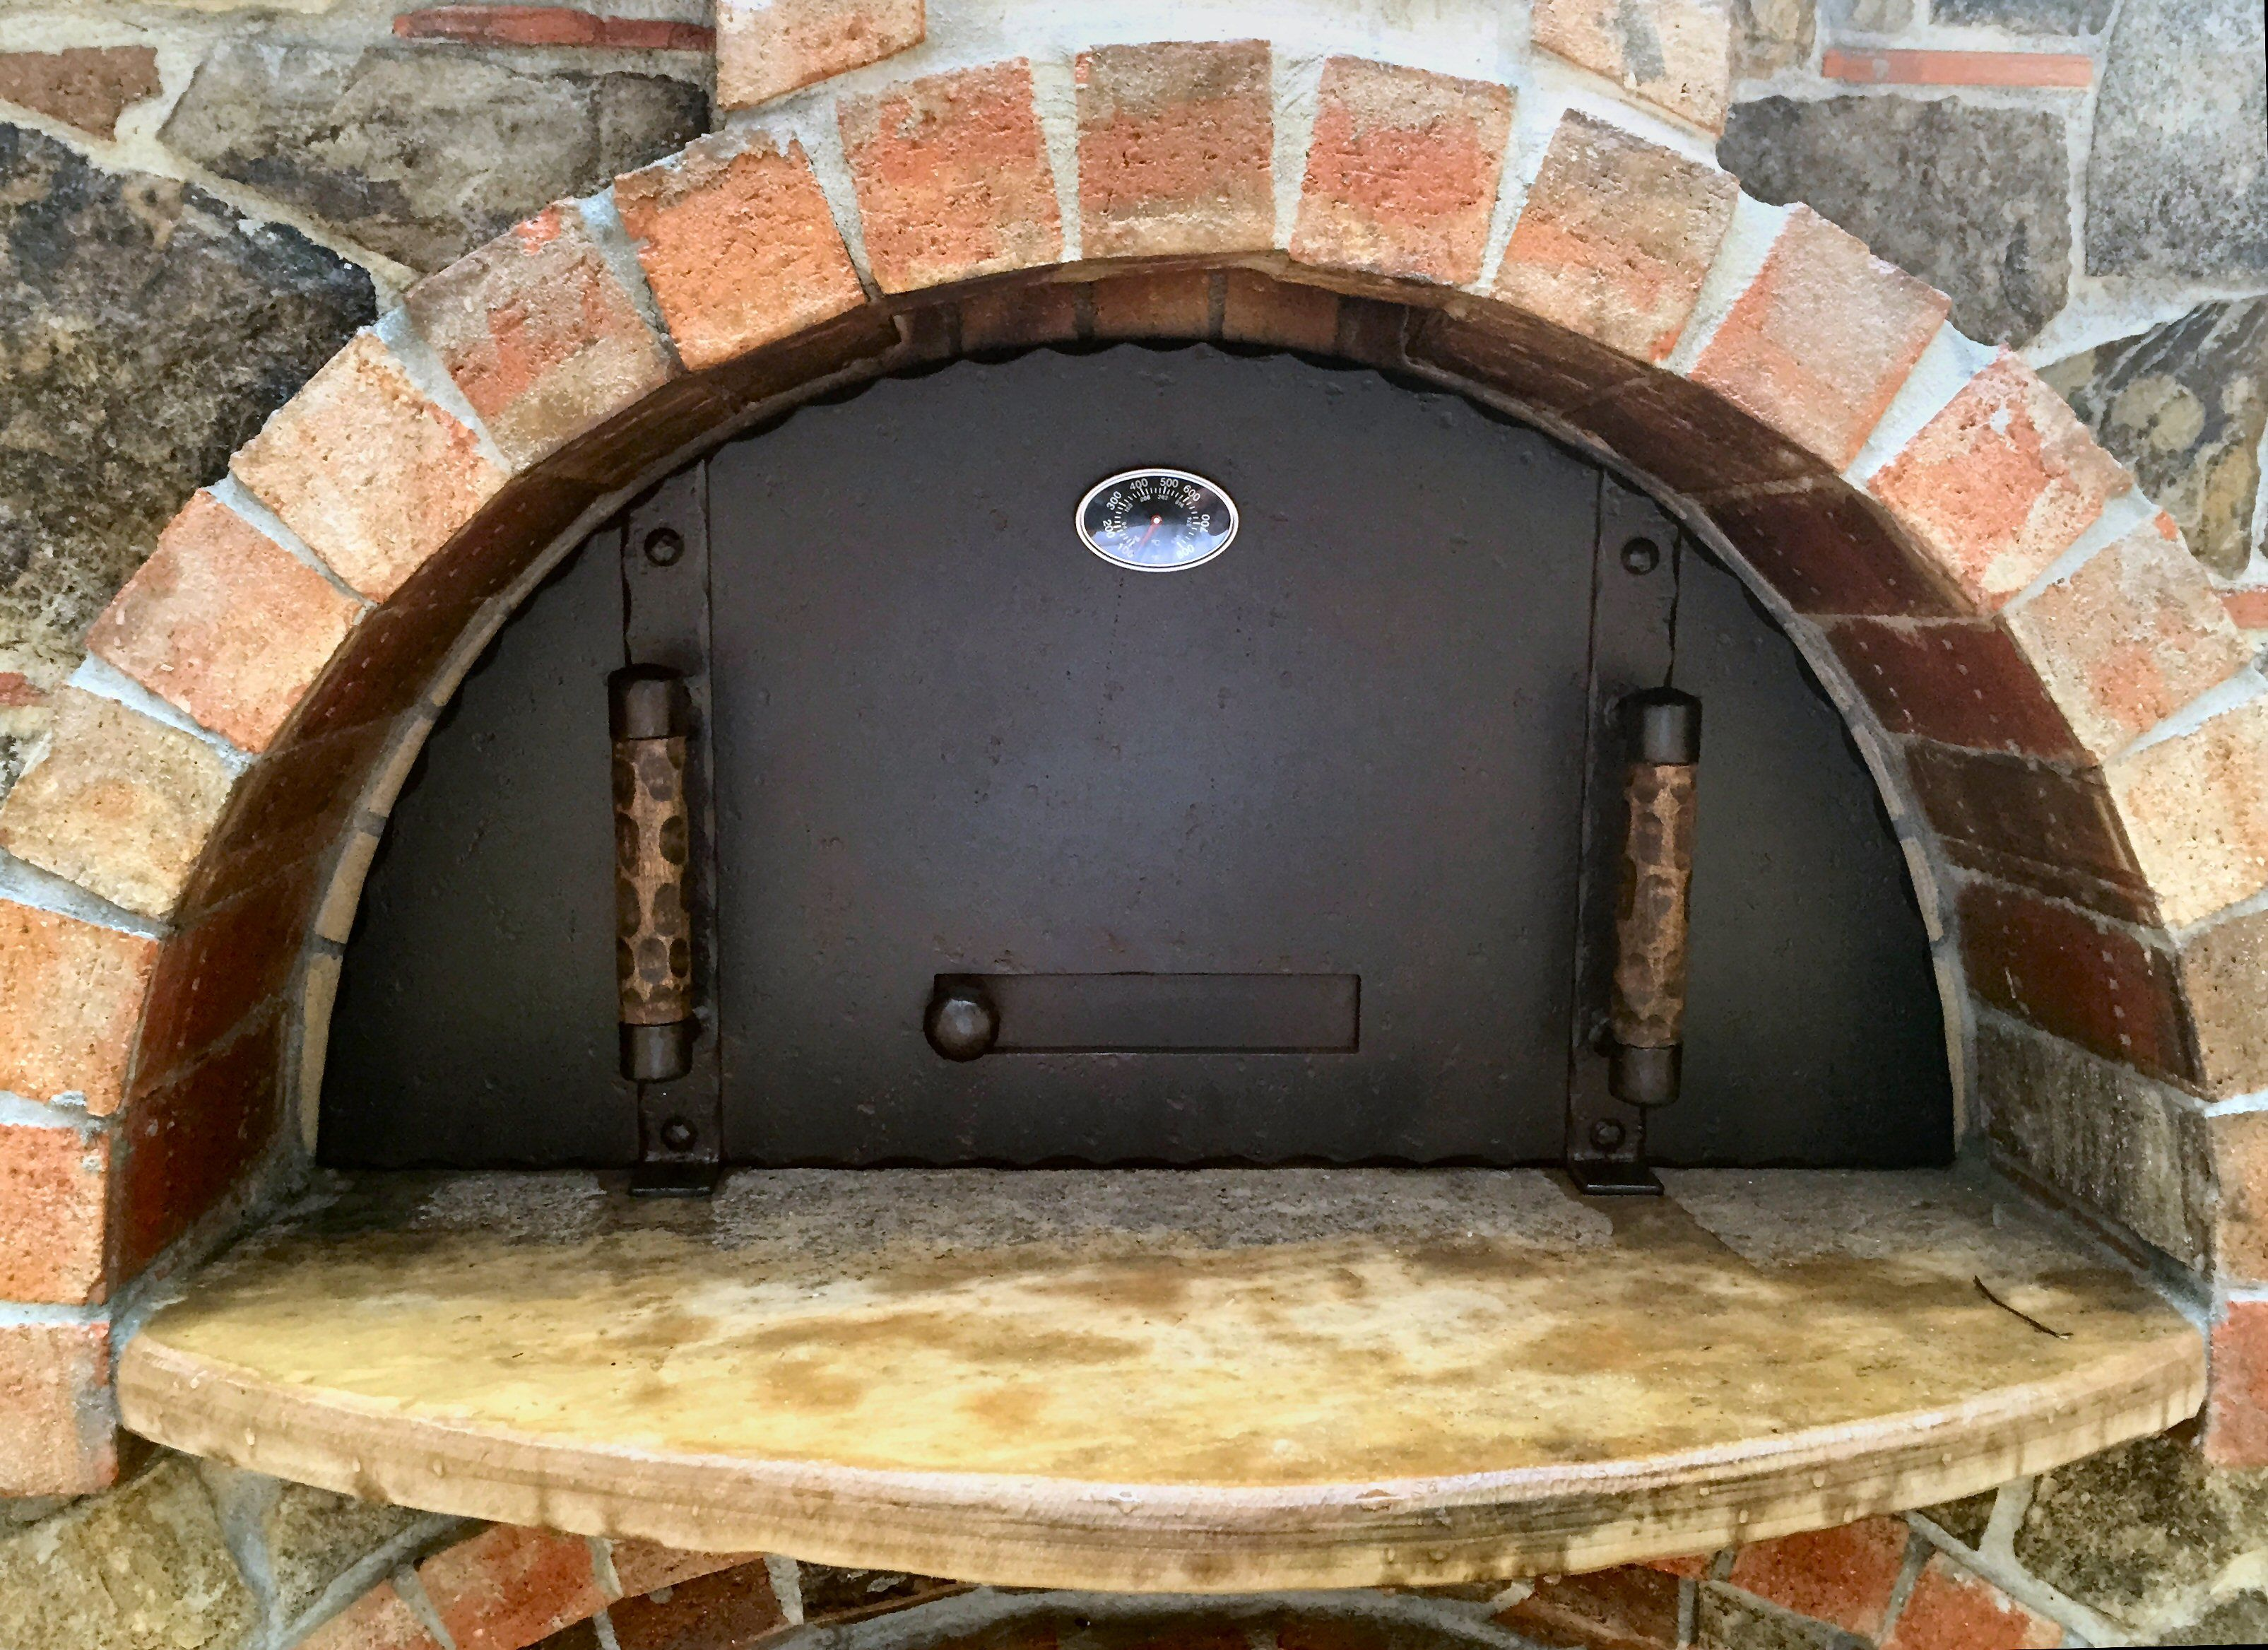 Fireplace Damper Handle Fresh Md 208 Full Radius Pizza Oven Door with A Damper